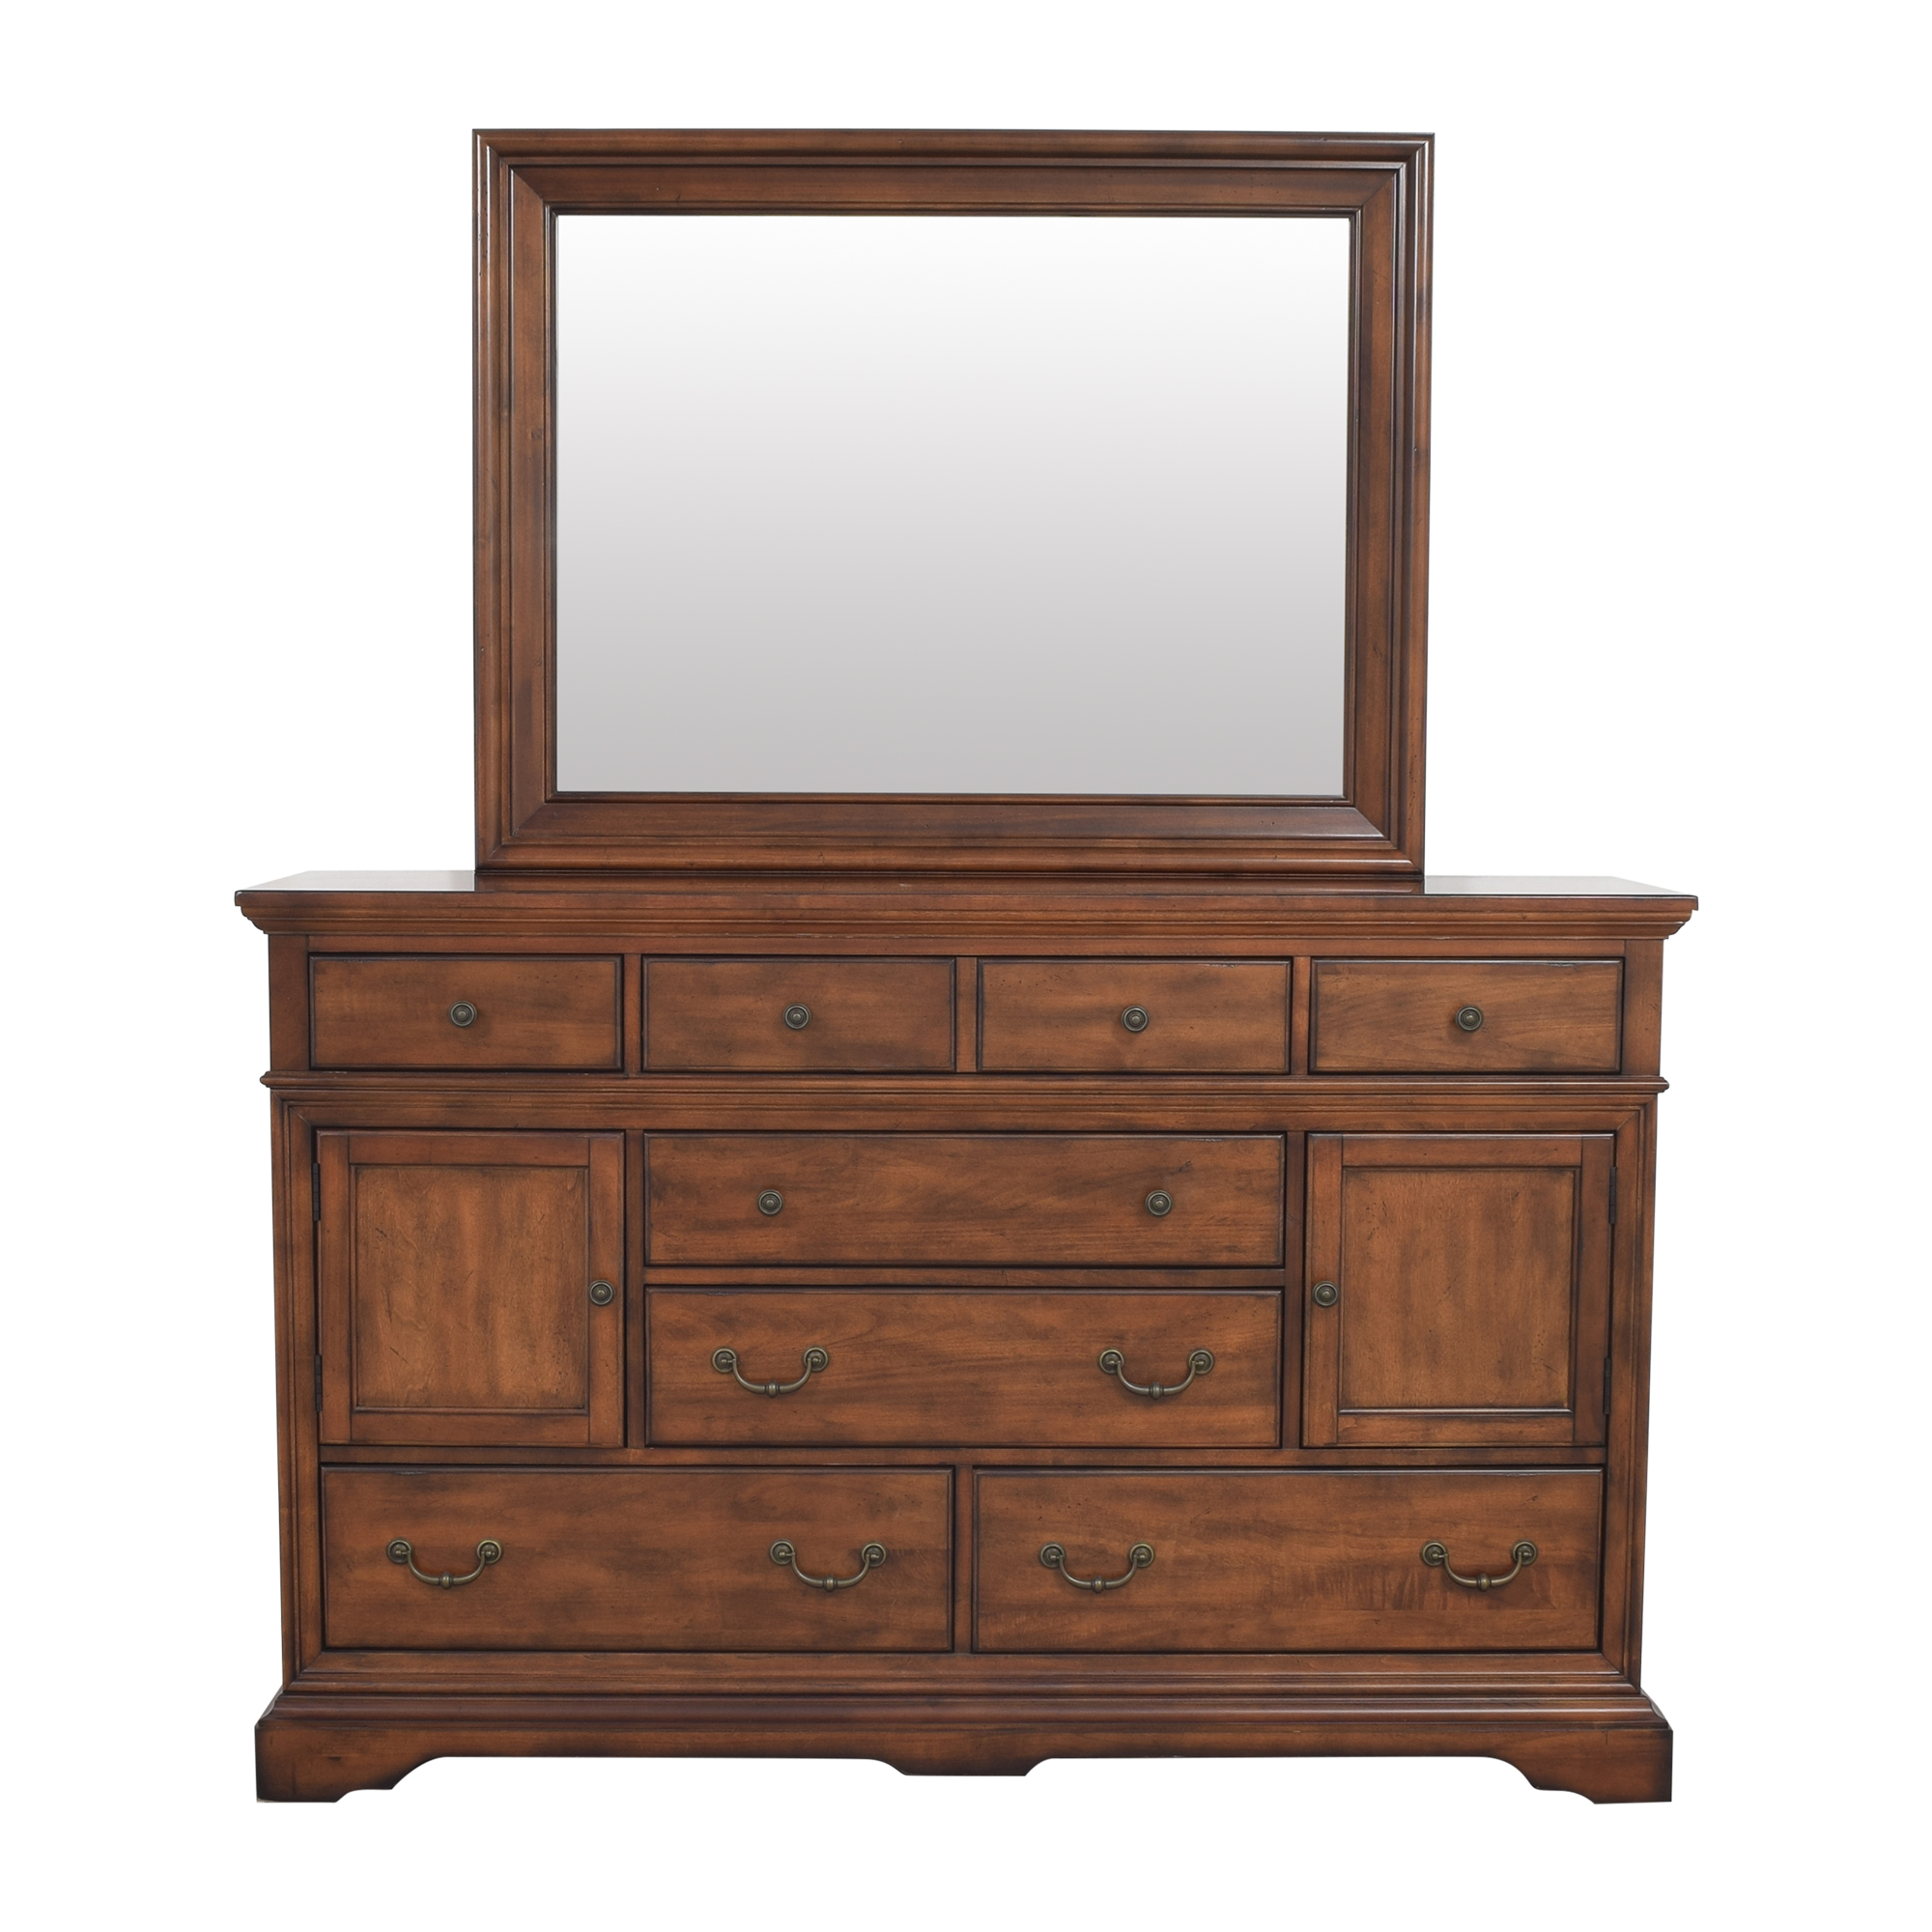 Cresent Furniture Cottage Media Dresser with Mirror Cresent Furniture